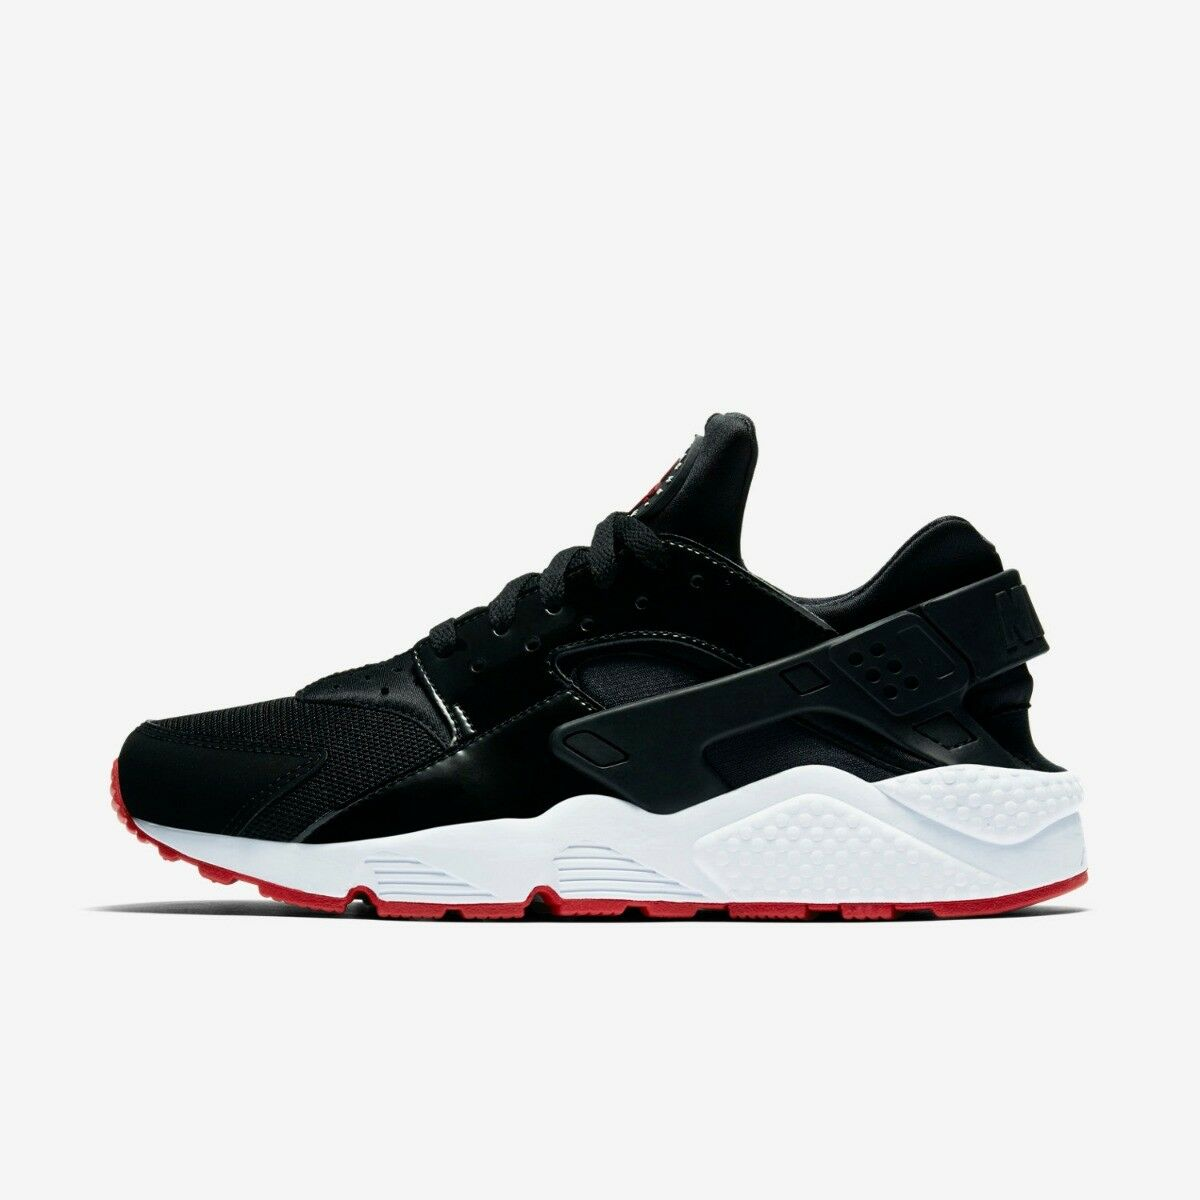 NIKE AIR HUARACHE MENS RUNNING TRAINER SHOE BLACK GYM RED SIZE 6 8 RRP £115/-